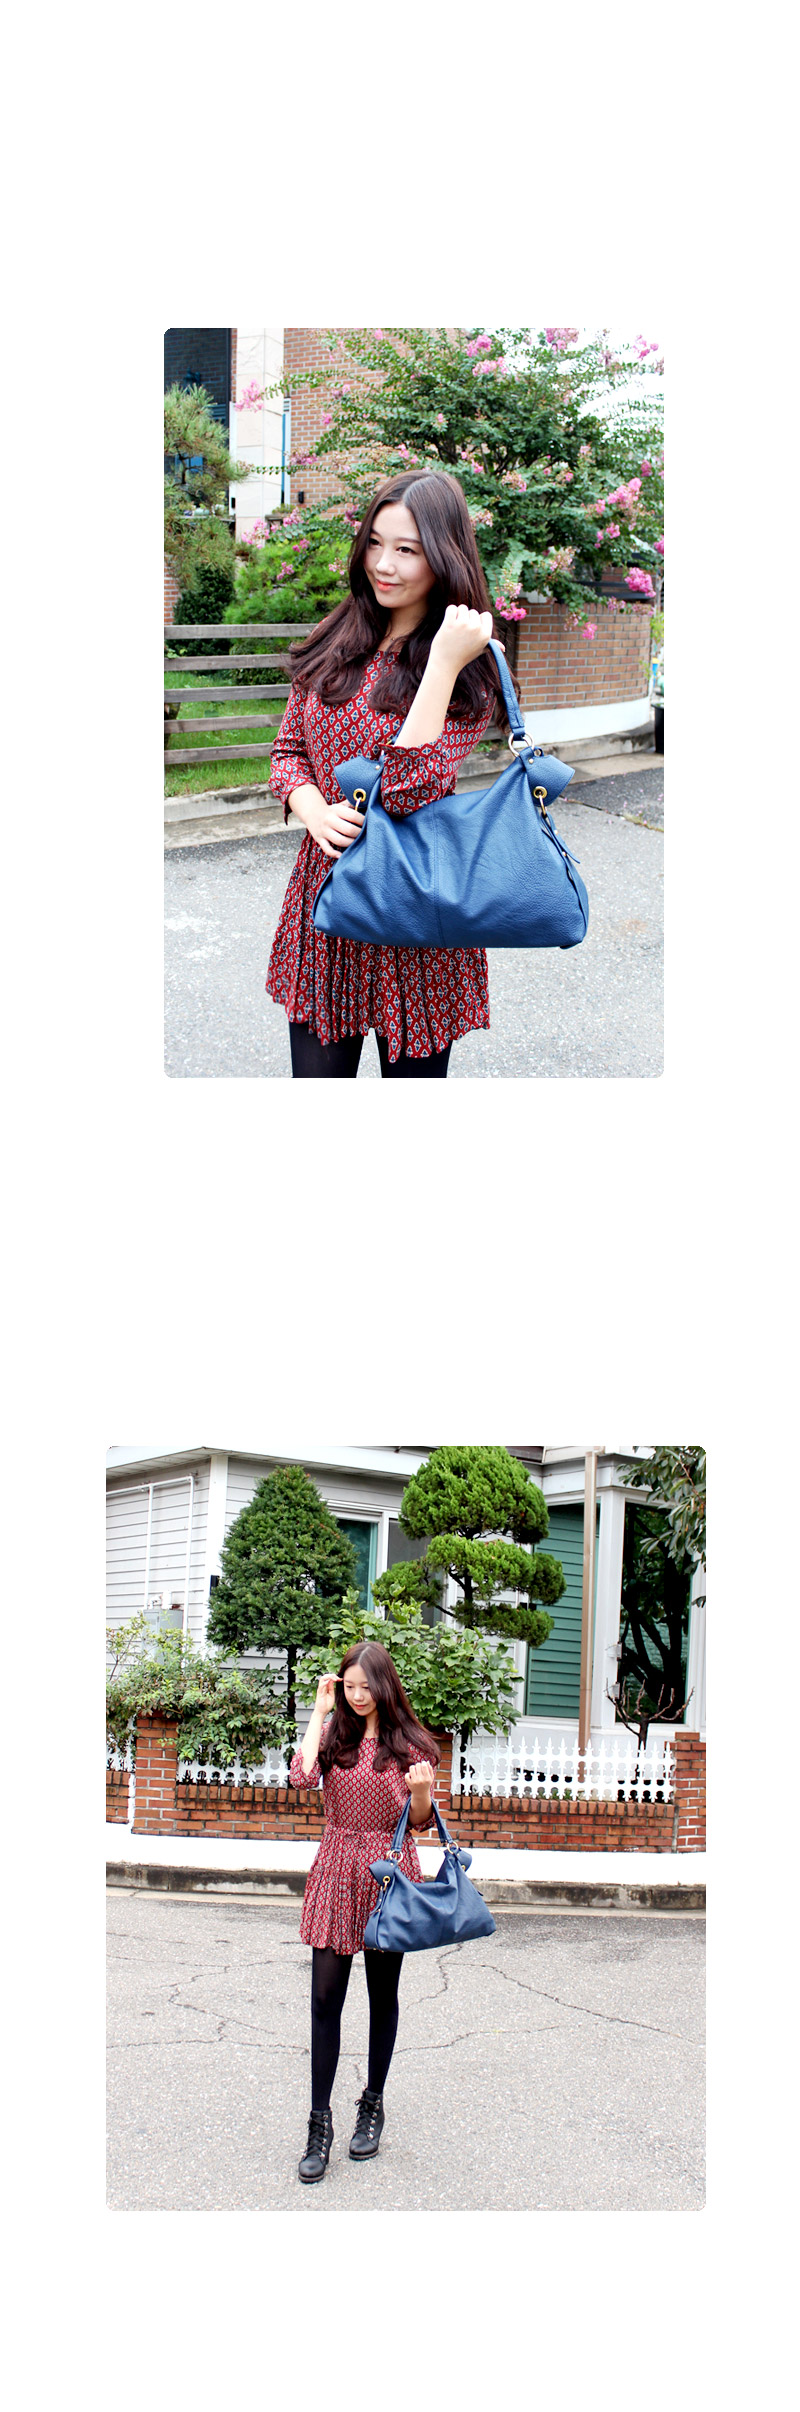 Shoulder&tote bag no. G18177view-M